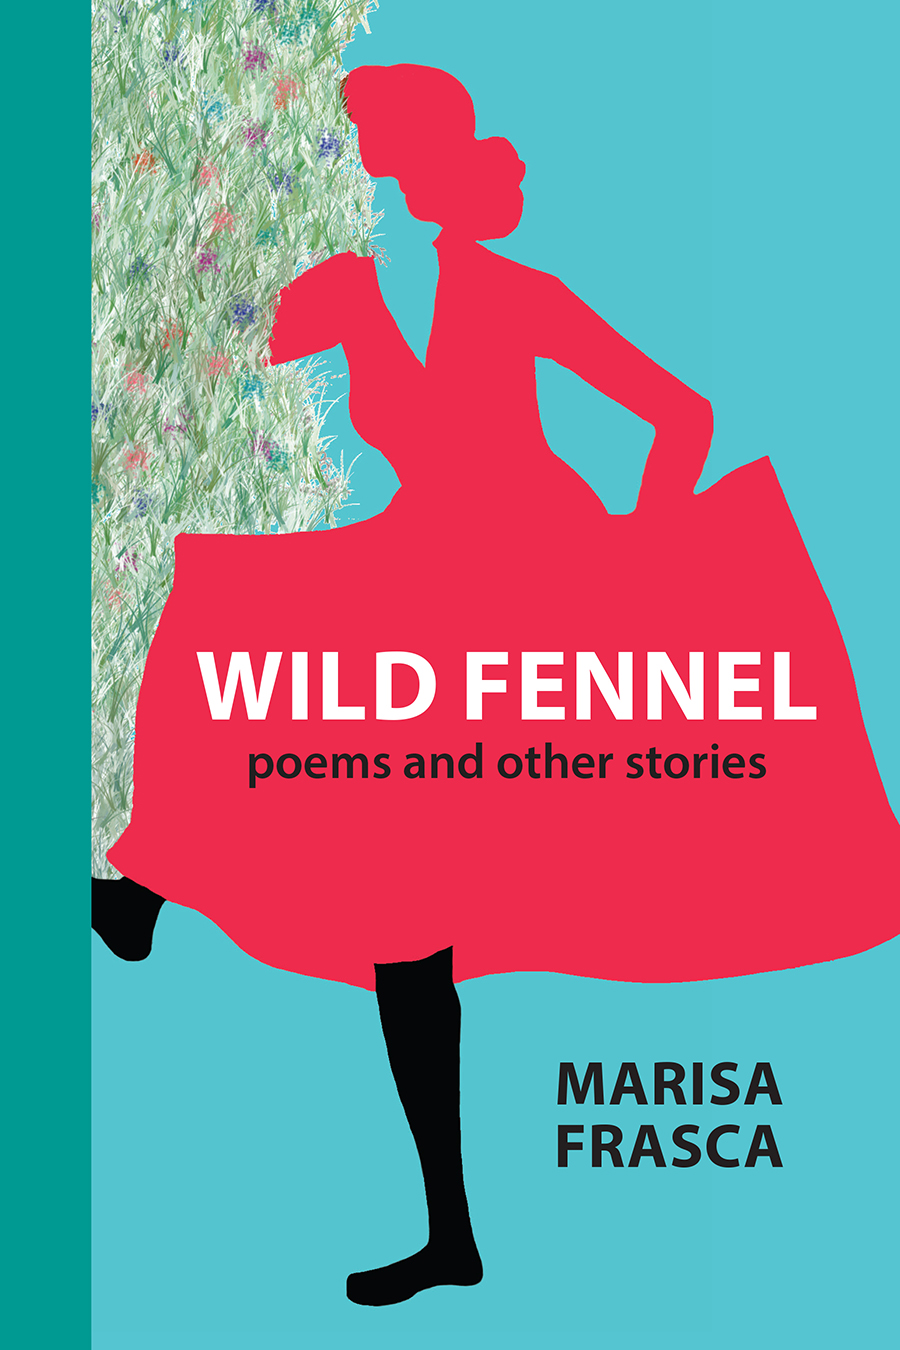 Wild Fennel: Poems and Other Stories